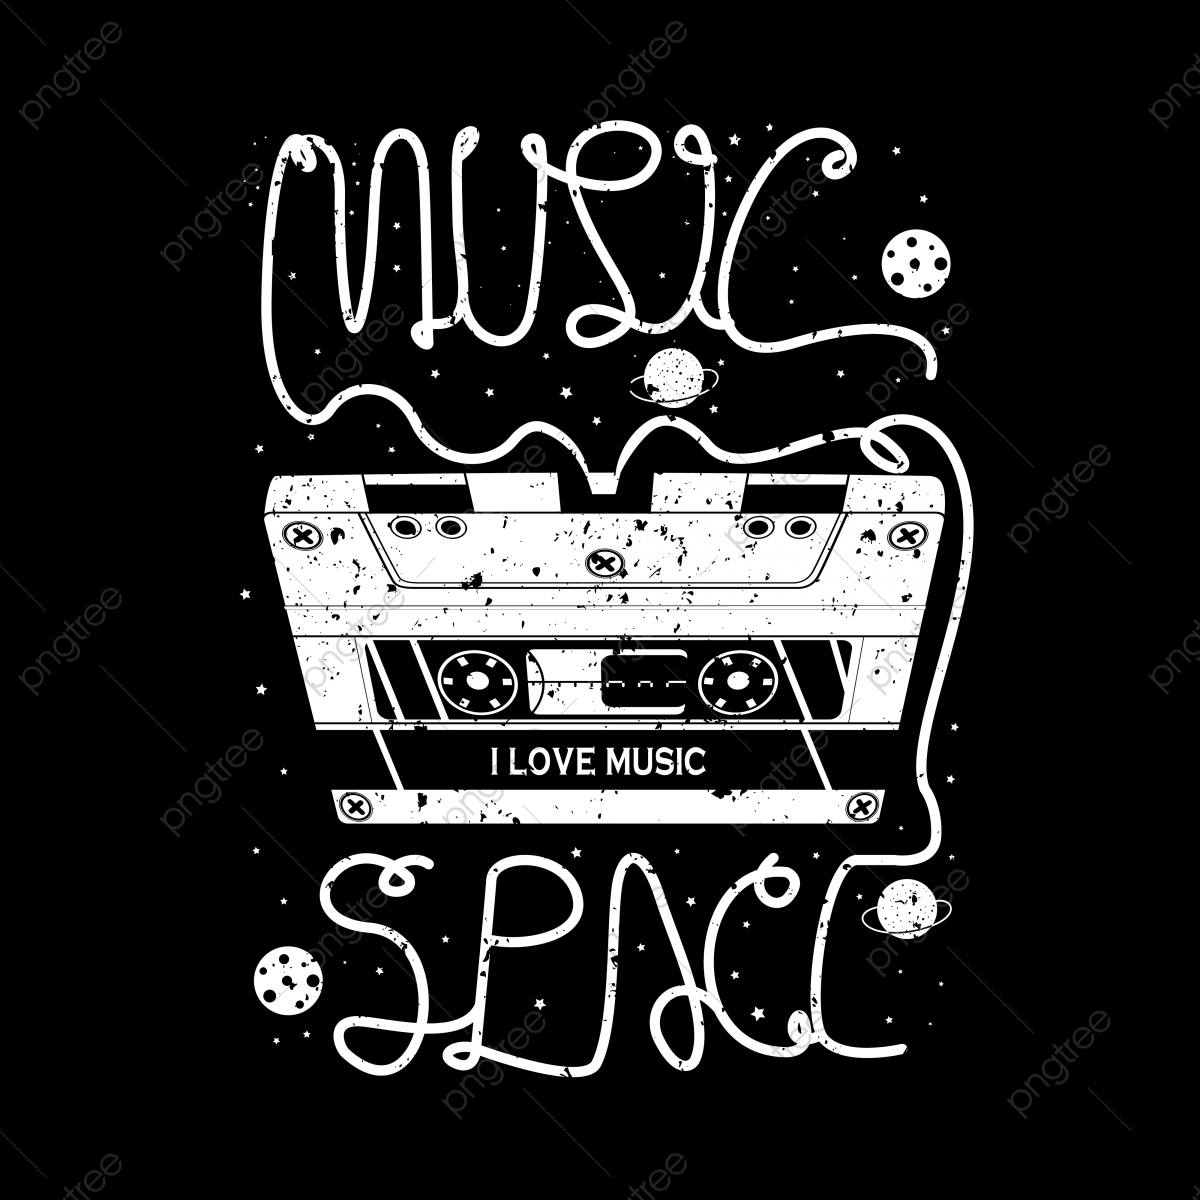 pngtree music typography t shirt design png image 5337082